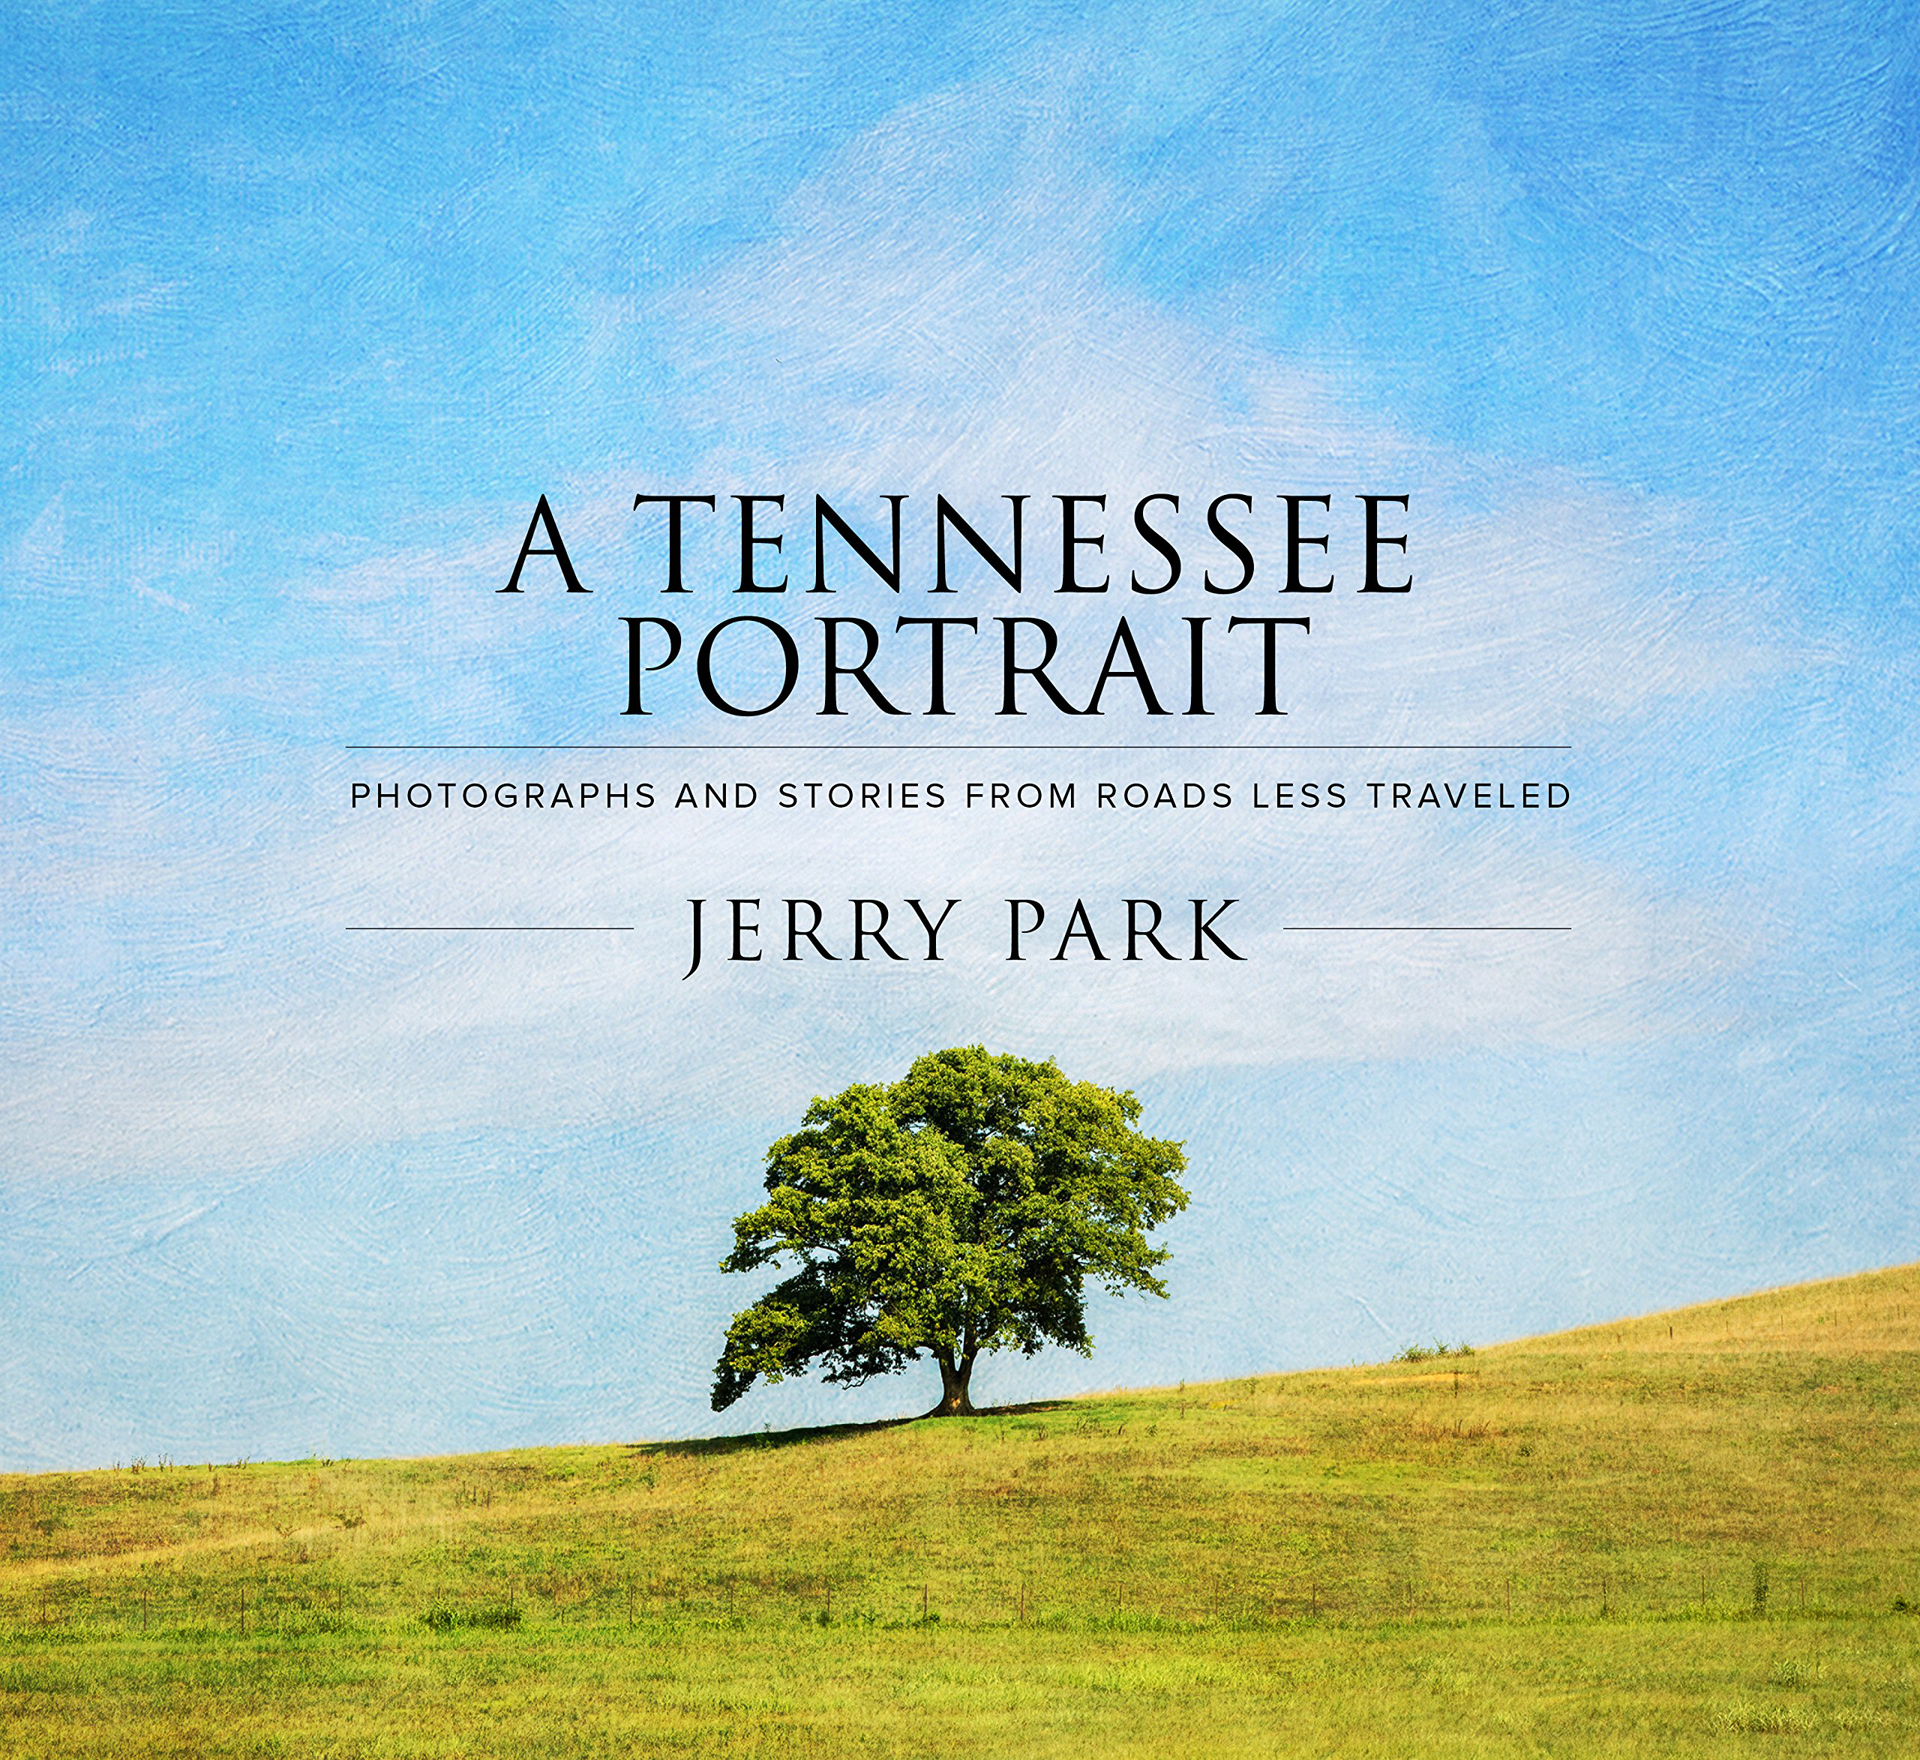 A Tennessee Portrait by Jerry Park